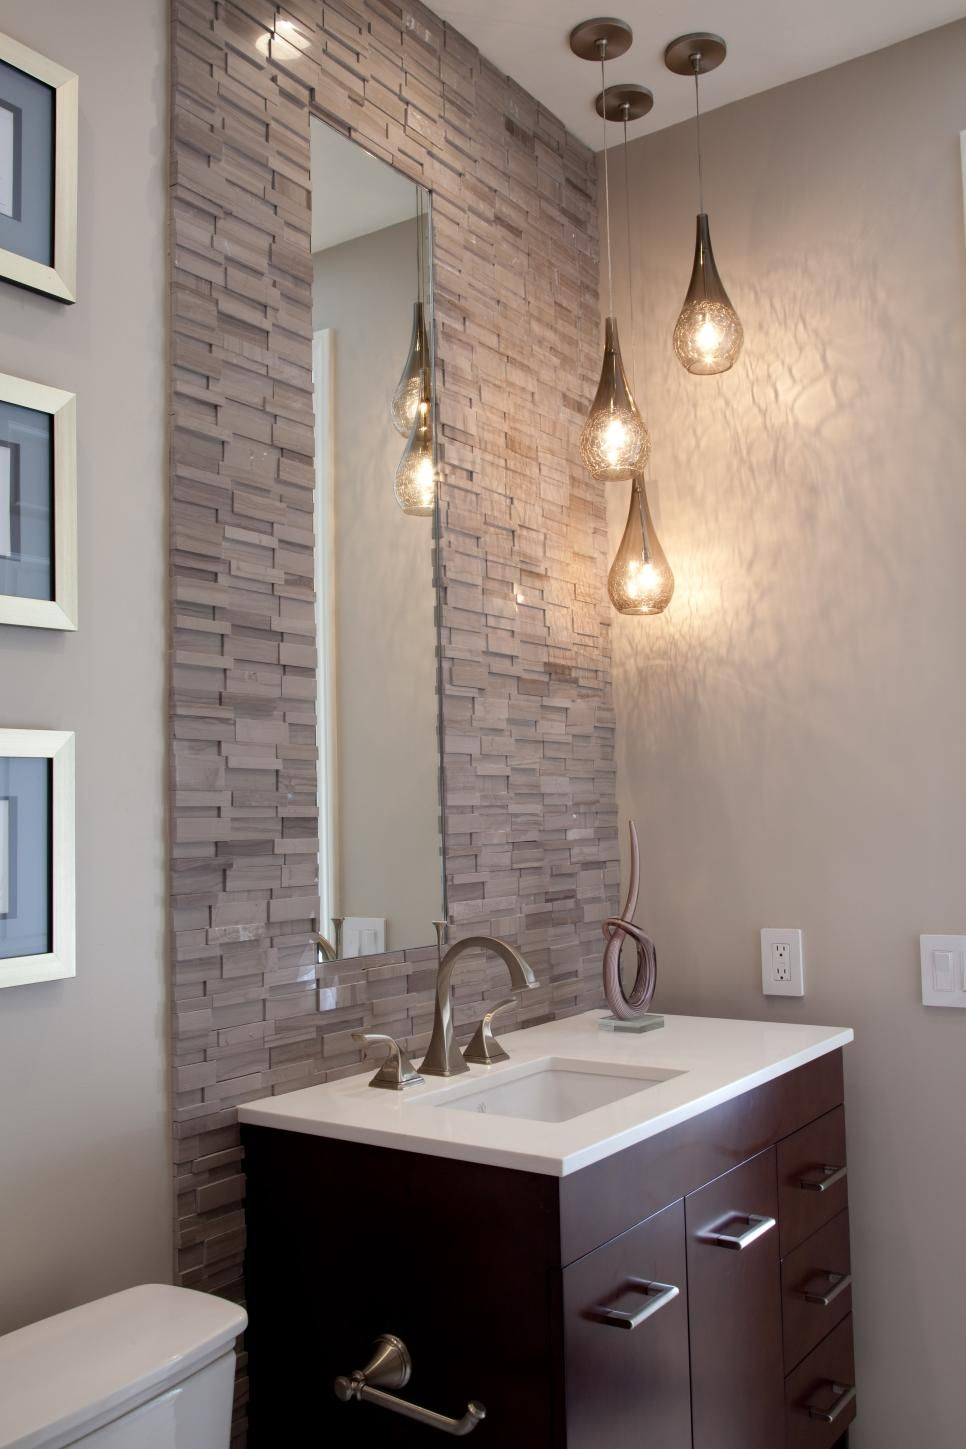 Bathroom Design Trend Undermount Sinks Transitional Style Undermount Sink And Stone Tiles